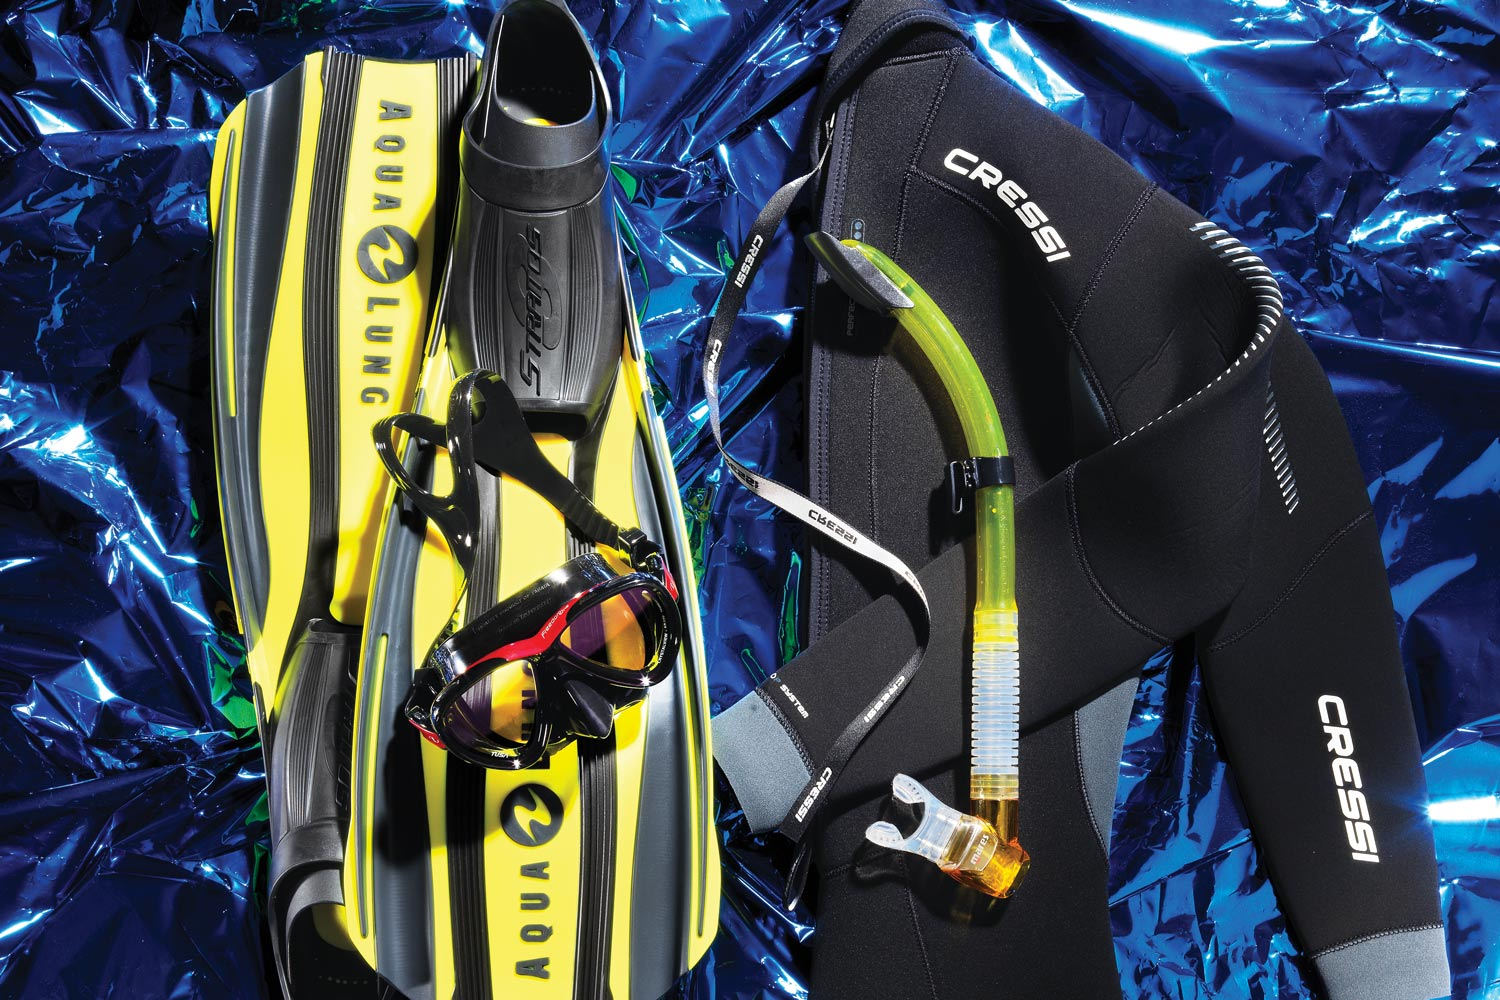 The best diving gear for beginners